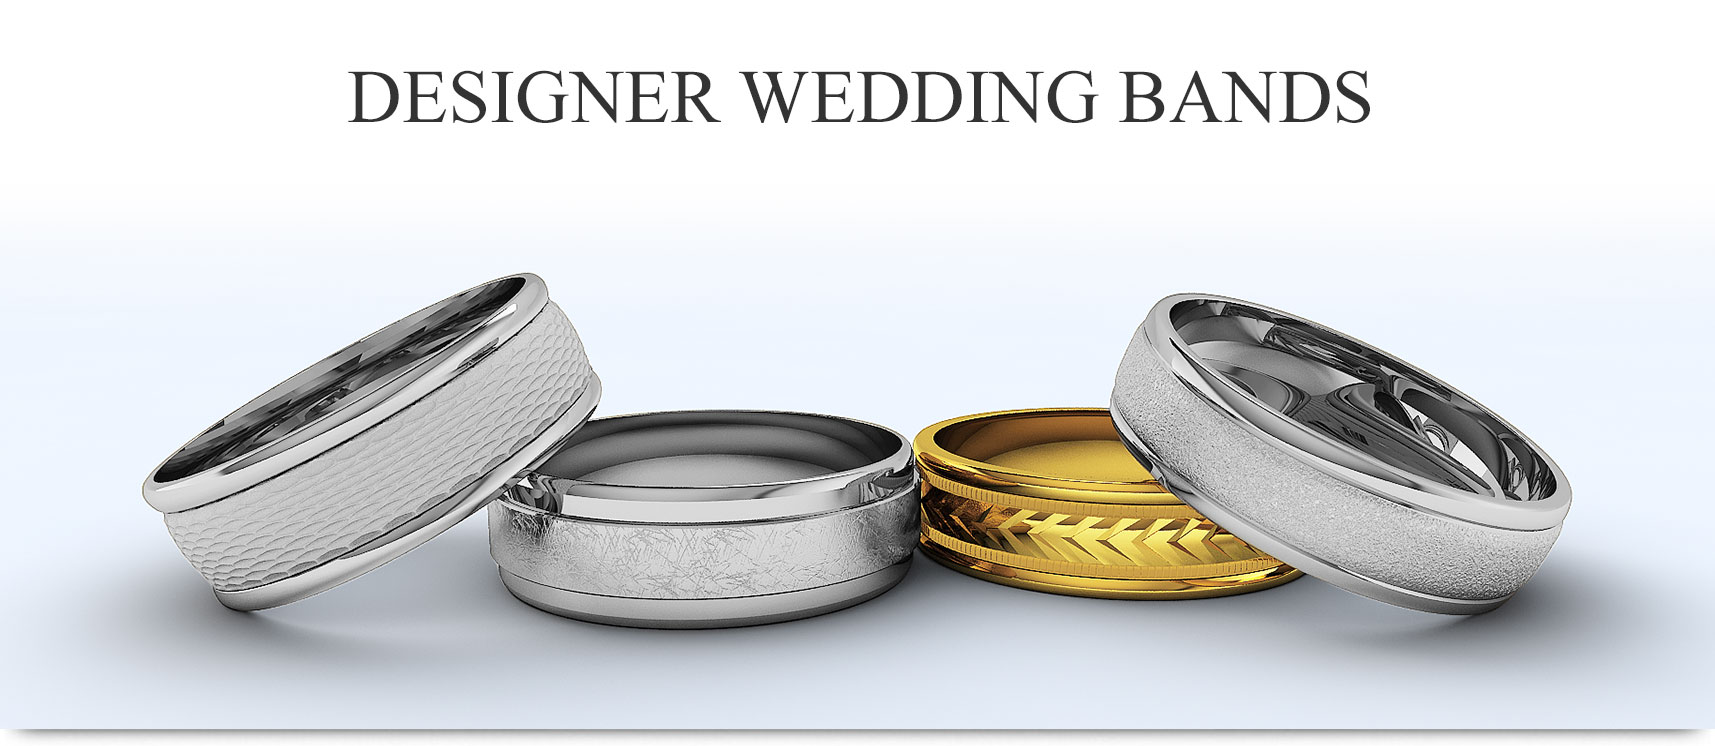 designer wedding bands for men and women